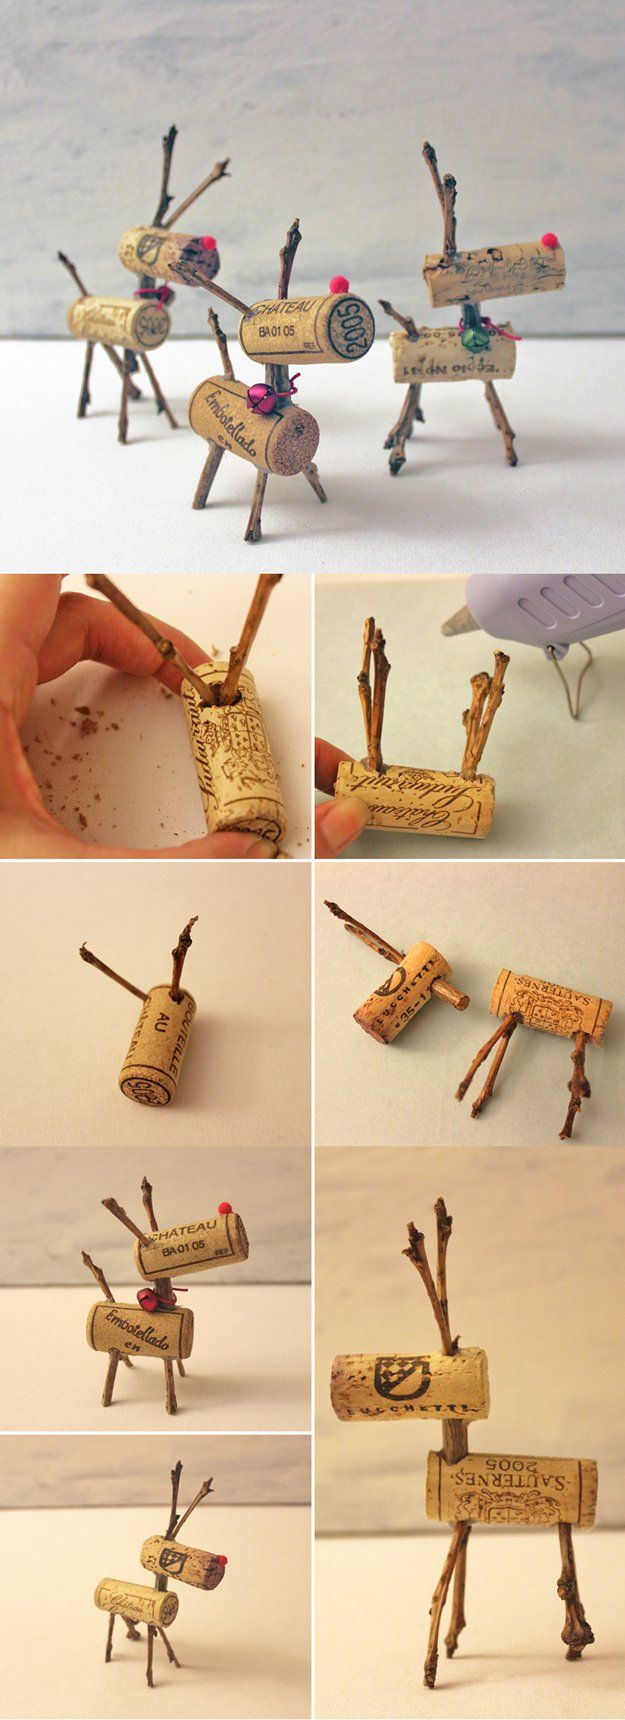 Fácil Vino DIY Cork Decoración Proyecto | http://artesaniasdebricolaje.ru/more-wine-cork-crafts-ideas/